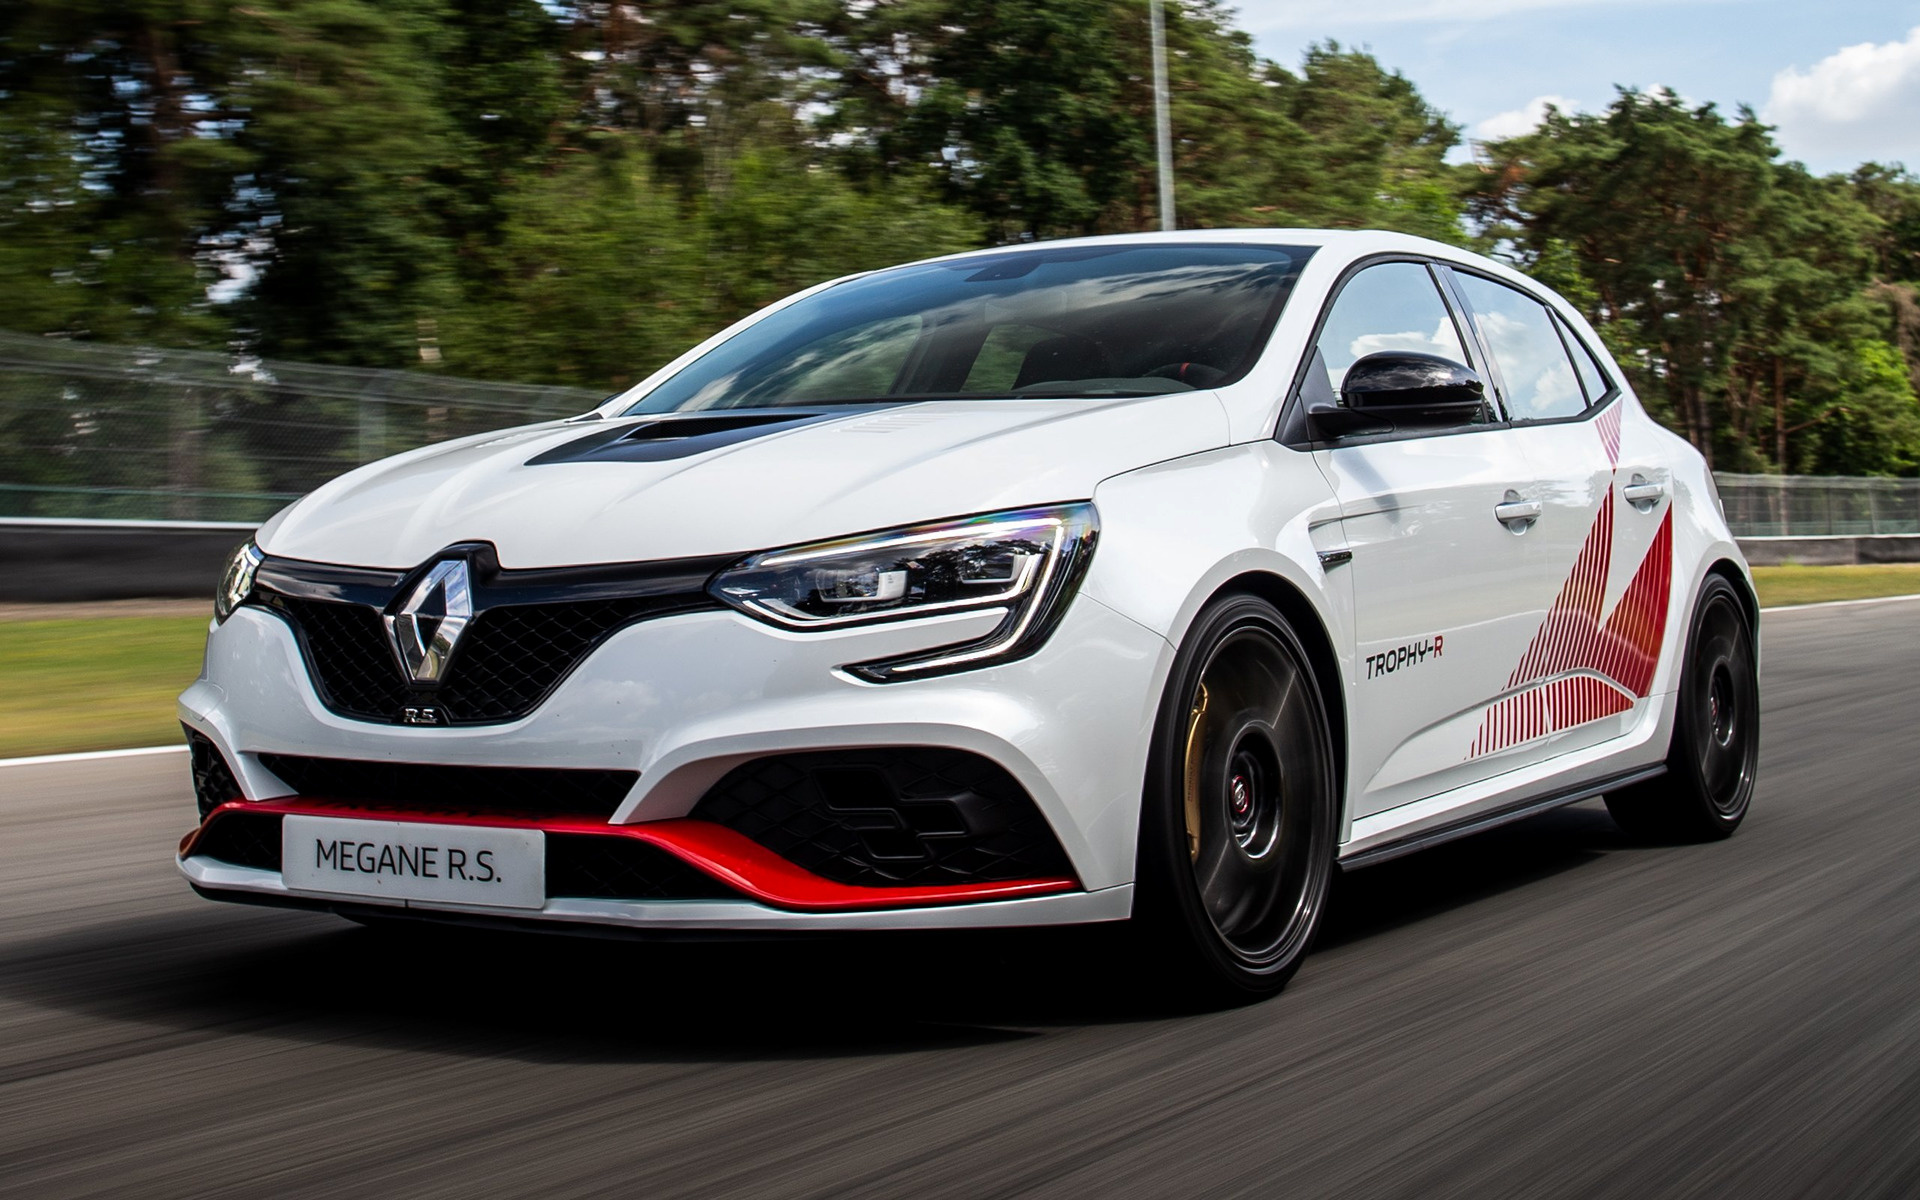 2019 Renault Megane Rs Trophy R Wallpapers And Hd Images Car Pixel